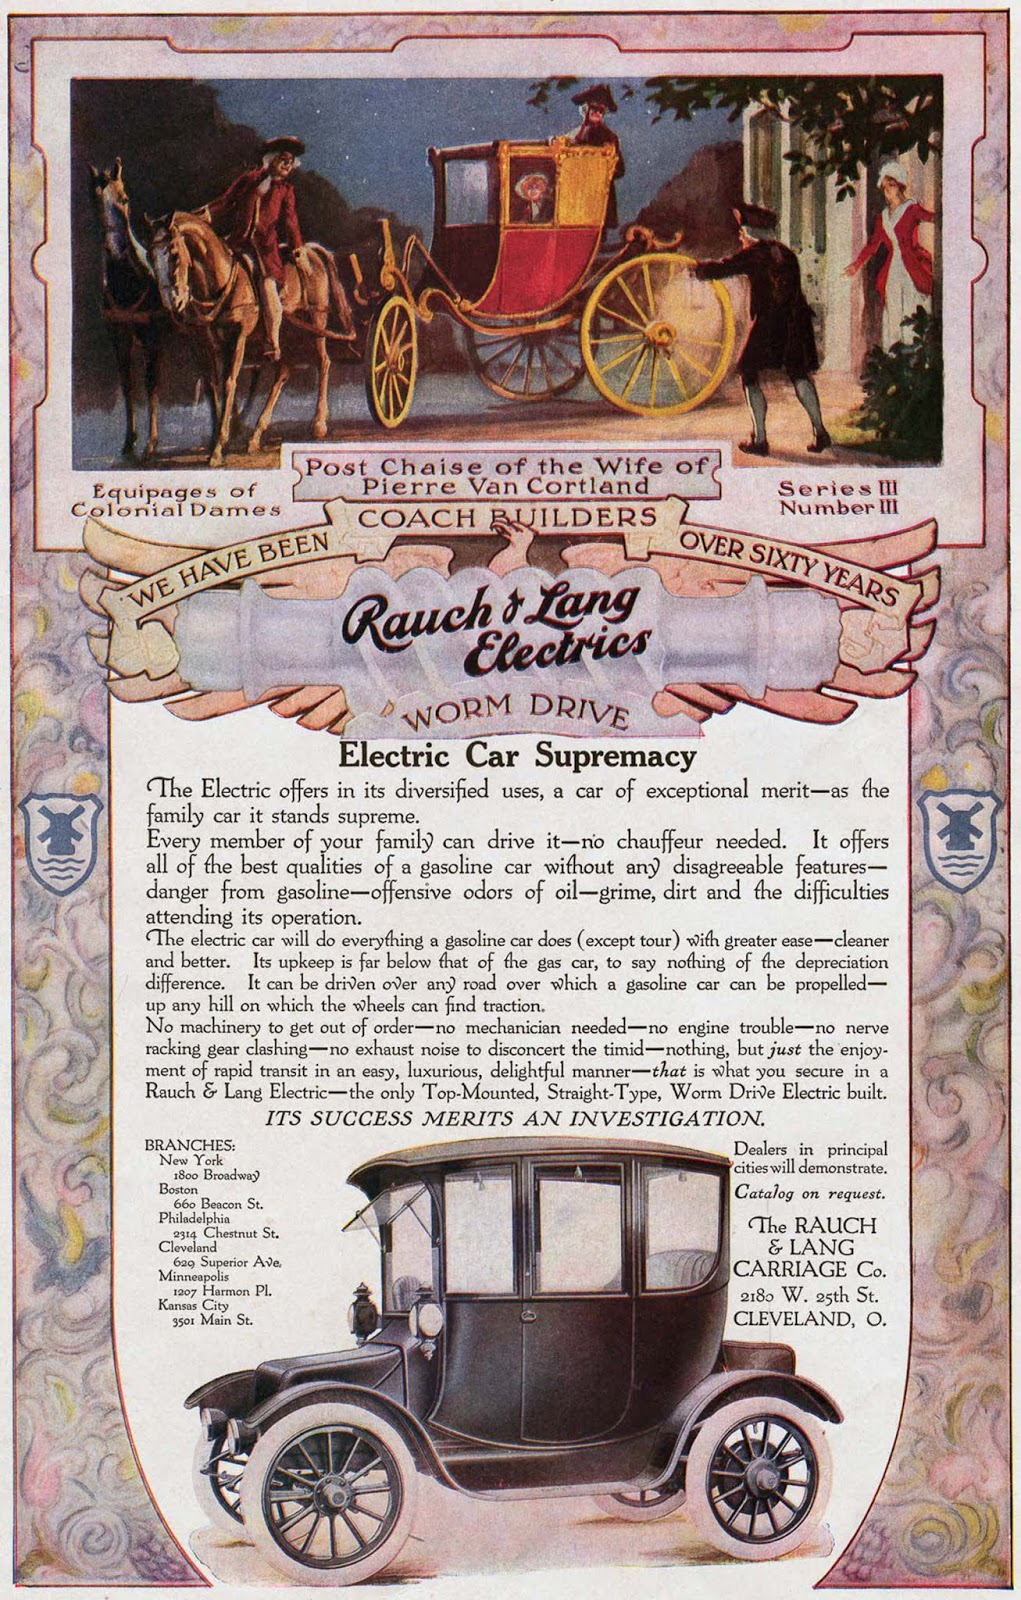 An advertisement for an electric car. 1910.